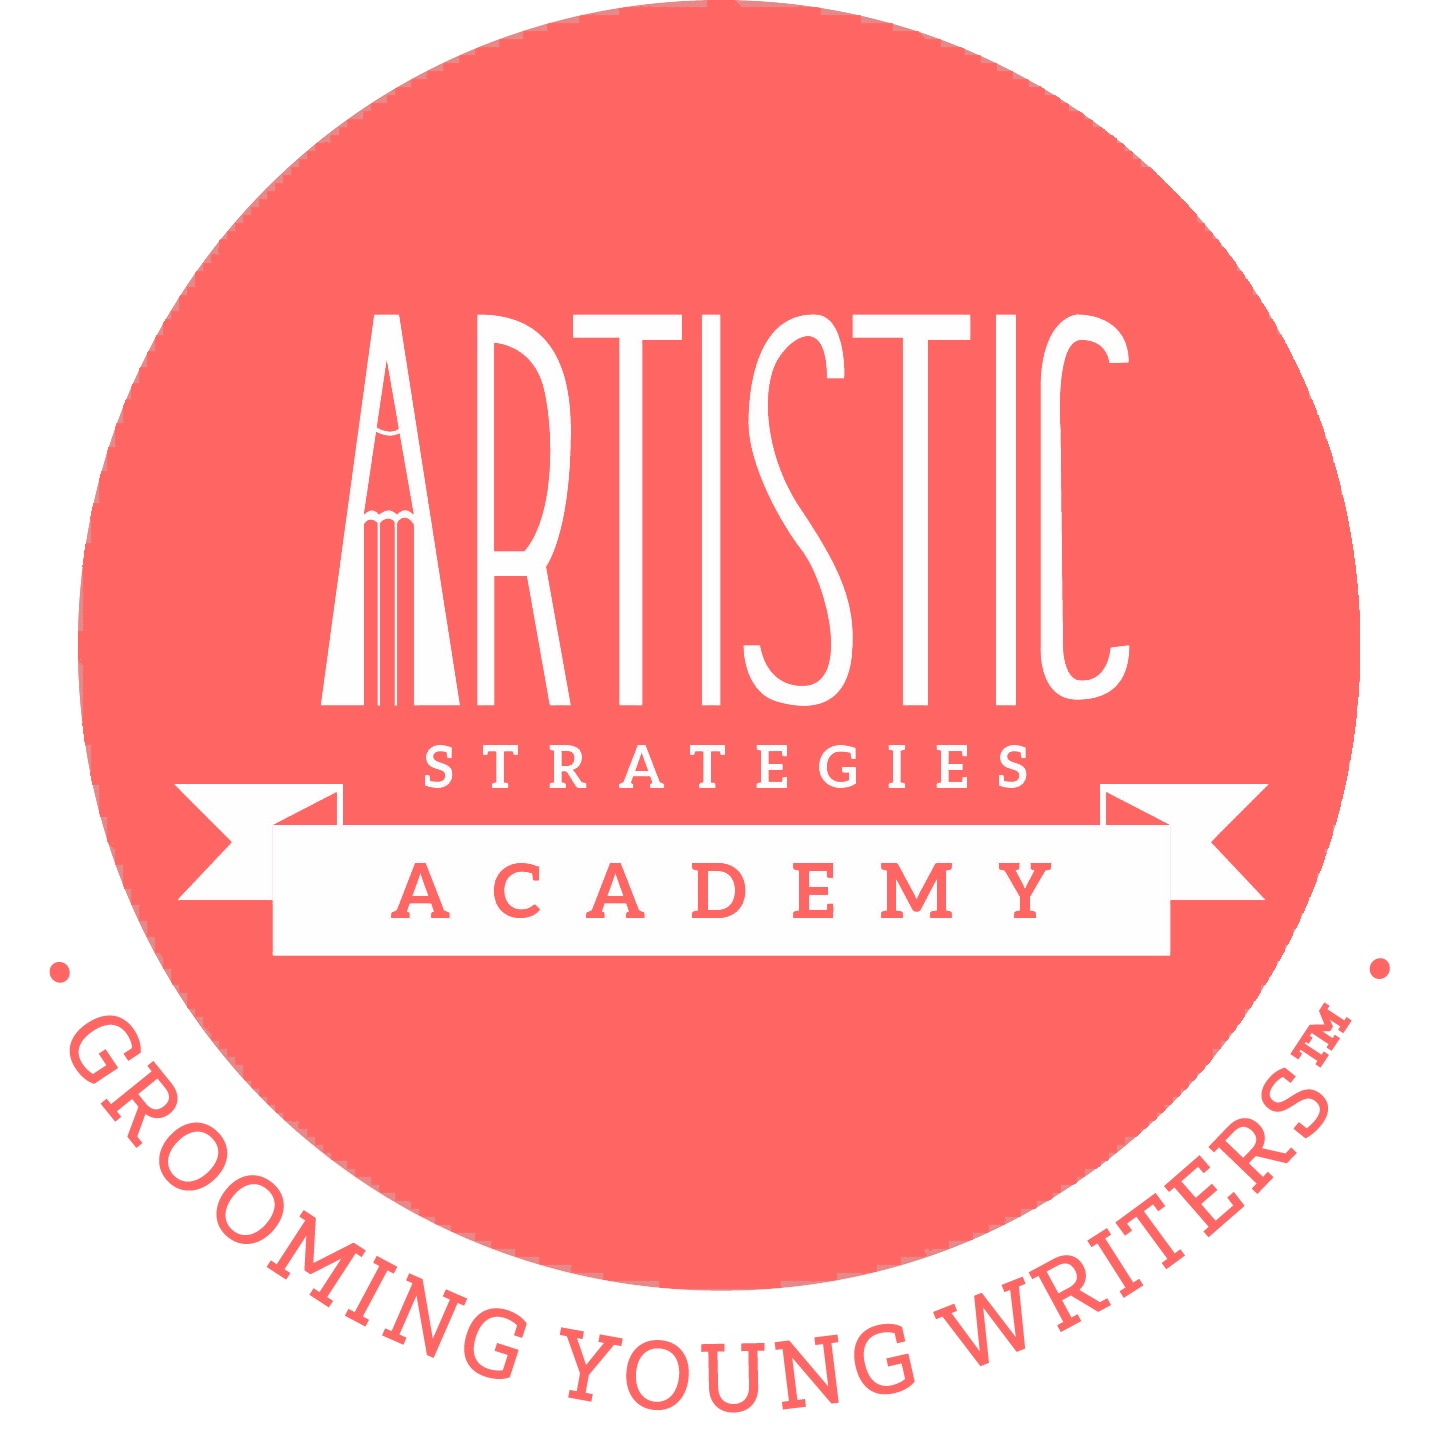 GROOMING YOUNG WRITERS